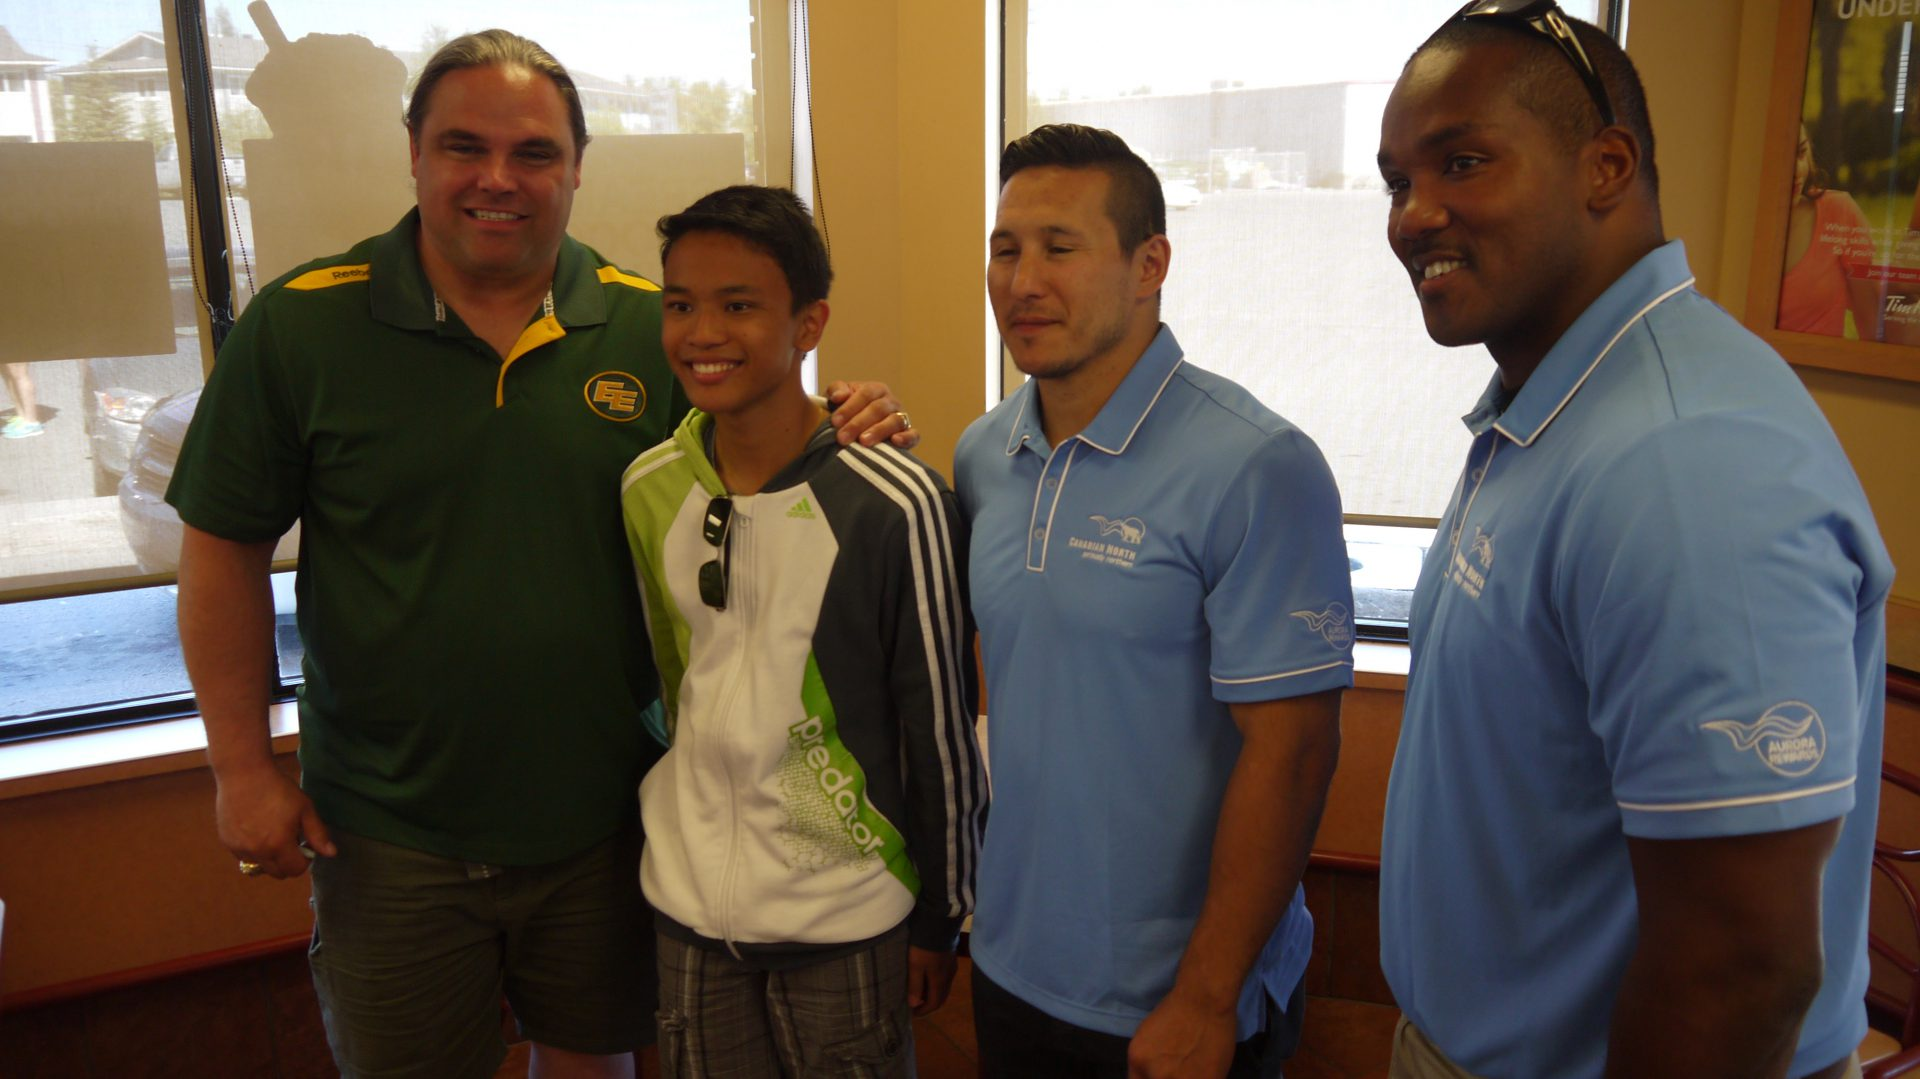 Jed Roberts, Rob Brown and Jordin Tootoo pose with a fan.